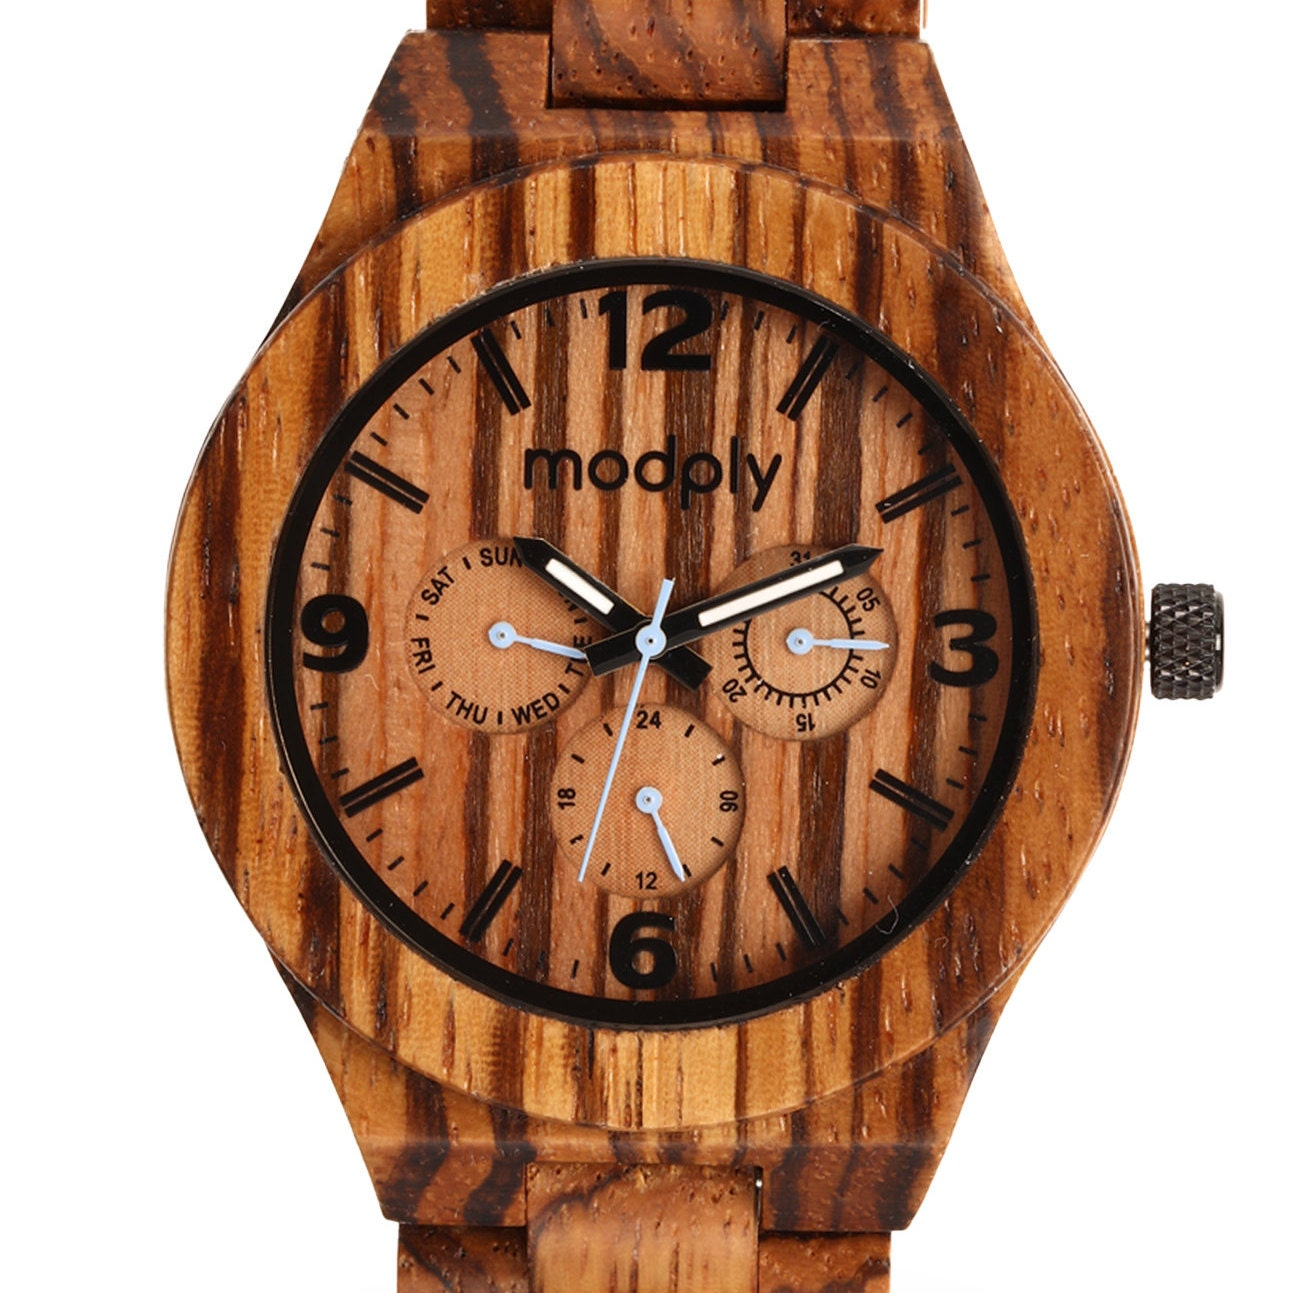 com sentai clothing vintage wrist wood watch watches amazon s handmade true men wooden dp quartz natural